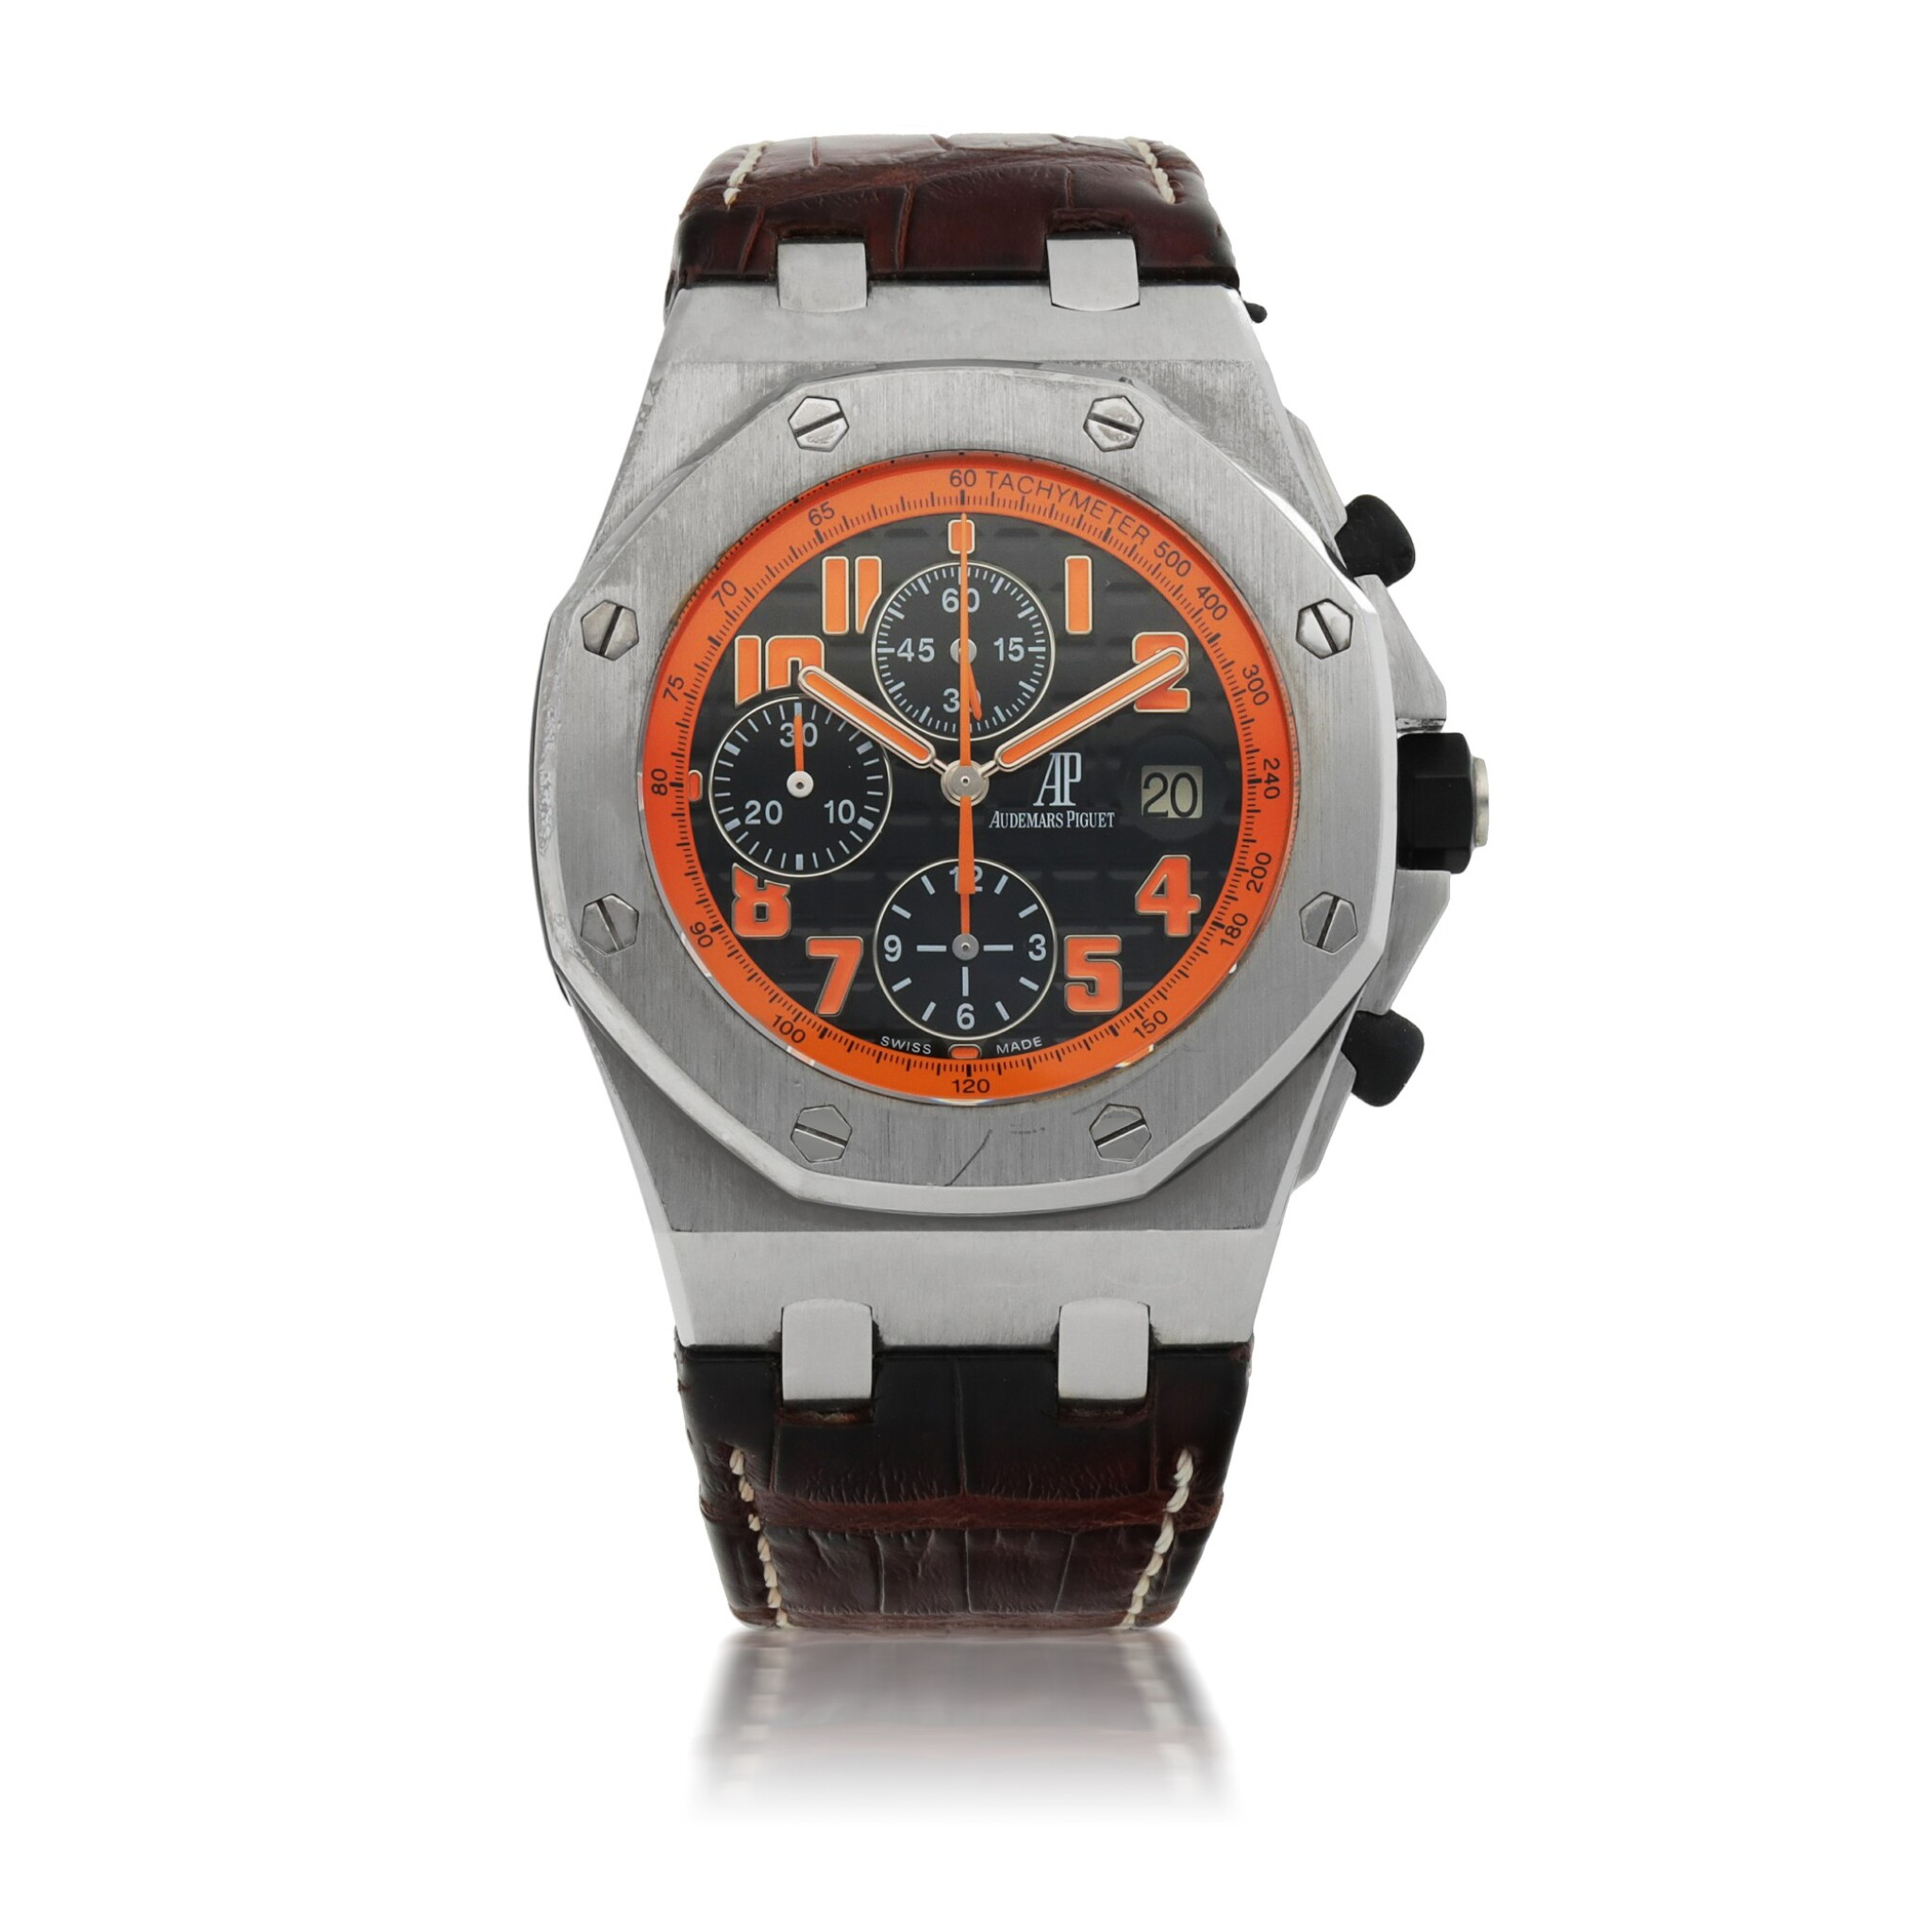 View full screen - View 1 of Lot 1155. AUDEMARS PIGUET |  ROYAL OAK OFFSHORE 'VOLCANO', REF 26170ST.00.D101CR.01 STAINLESS STEEL CHRONOGRAPH WRISTWATCH WITH DATE   CIRCA 2013.